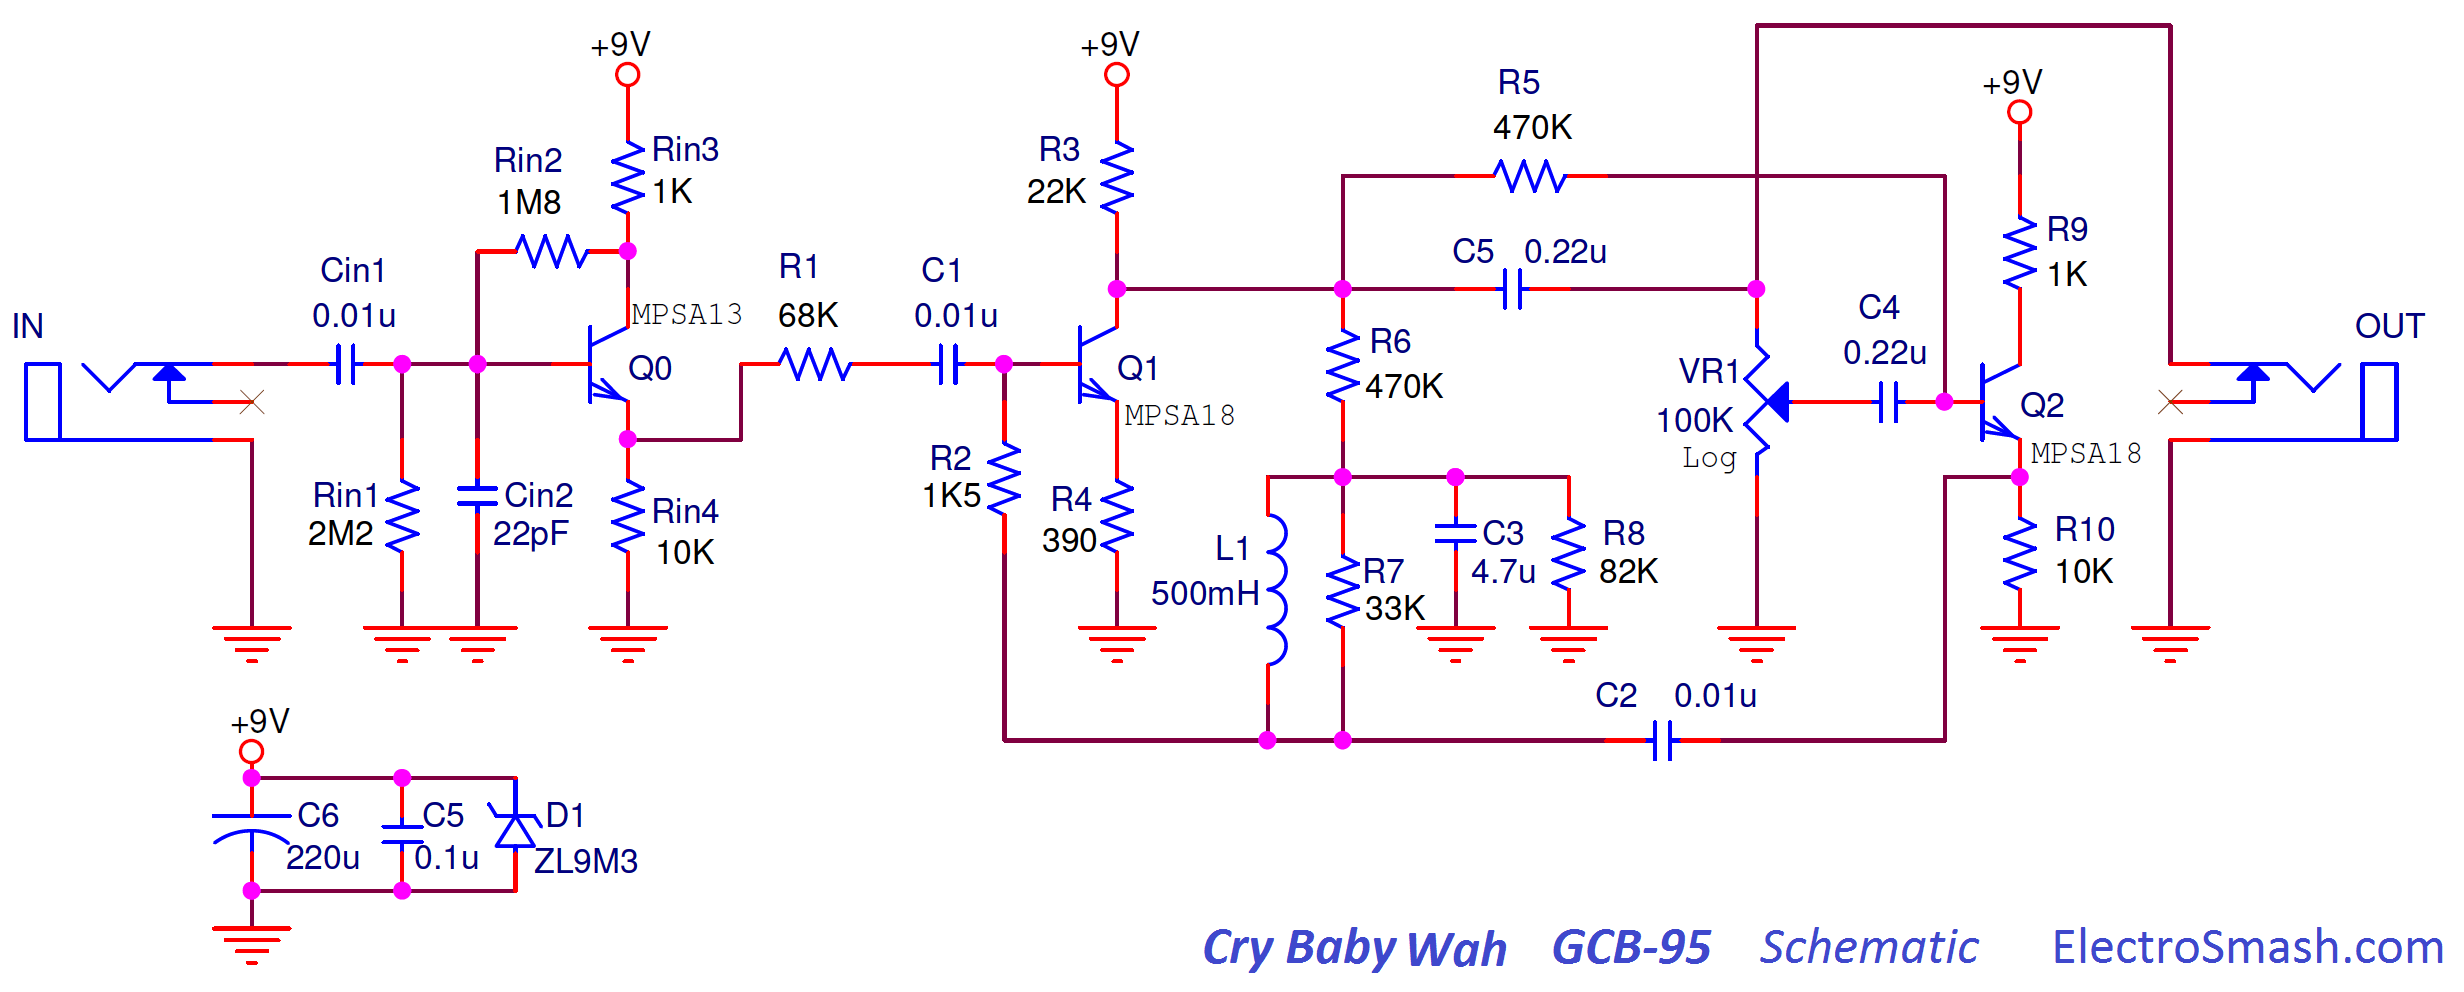 cry-baby-wah-gcb-95-schematic.png